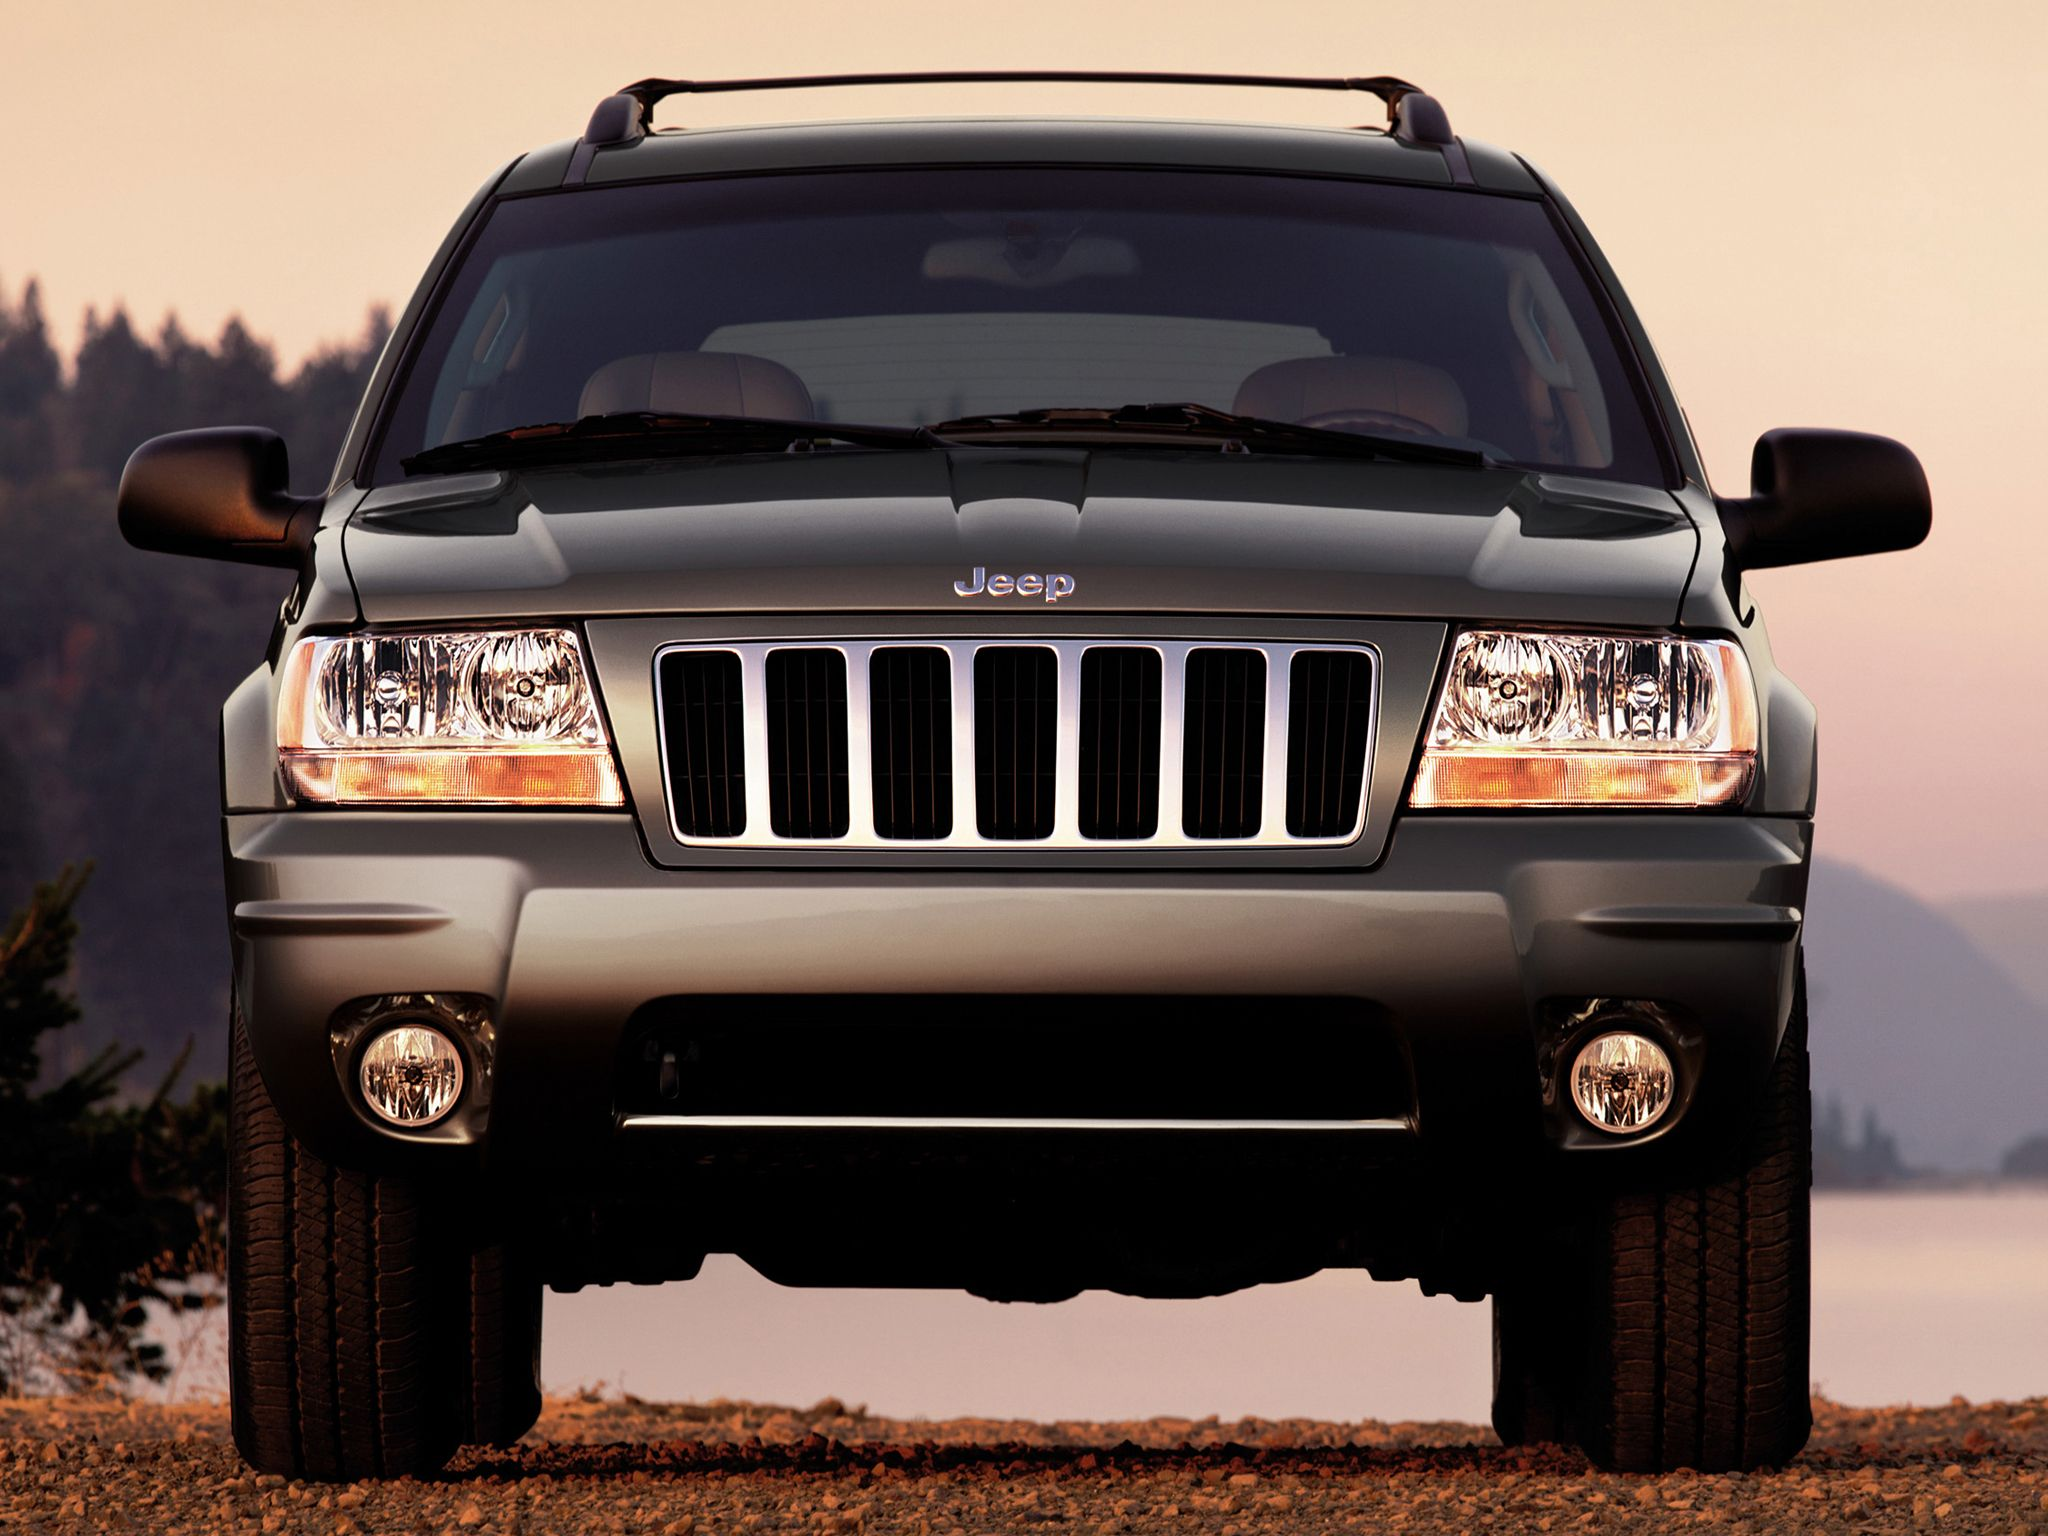 Jeep grand cherokee 1999 historia pinterest jeep grand cherokee cherokee and jeeps